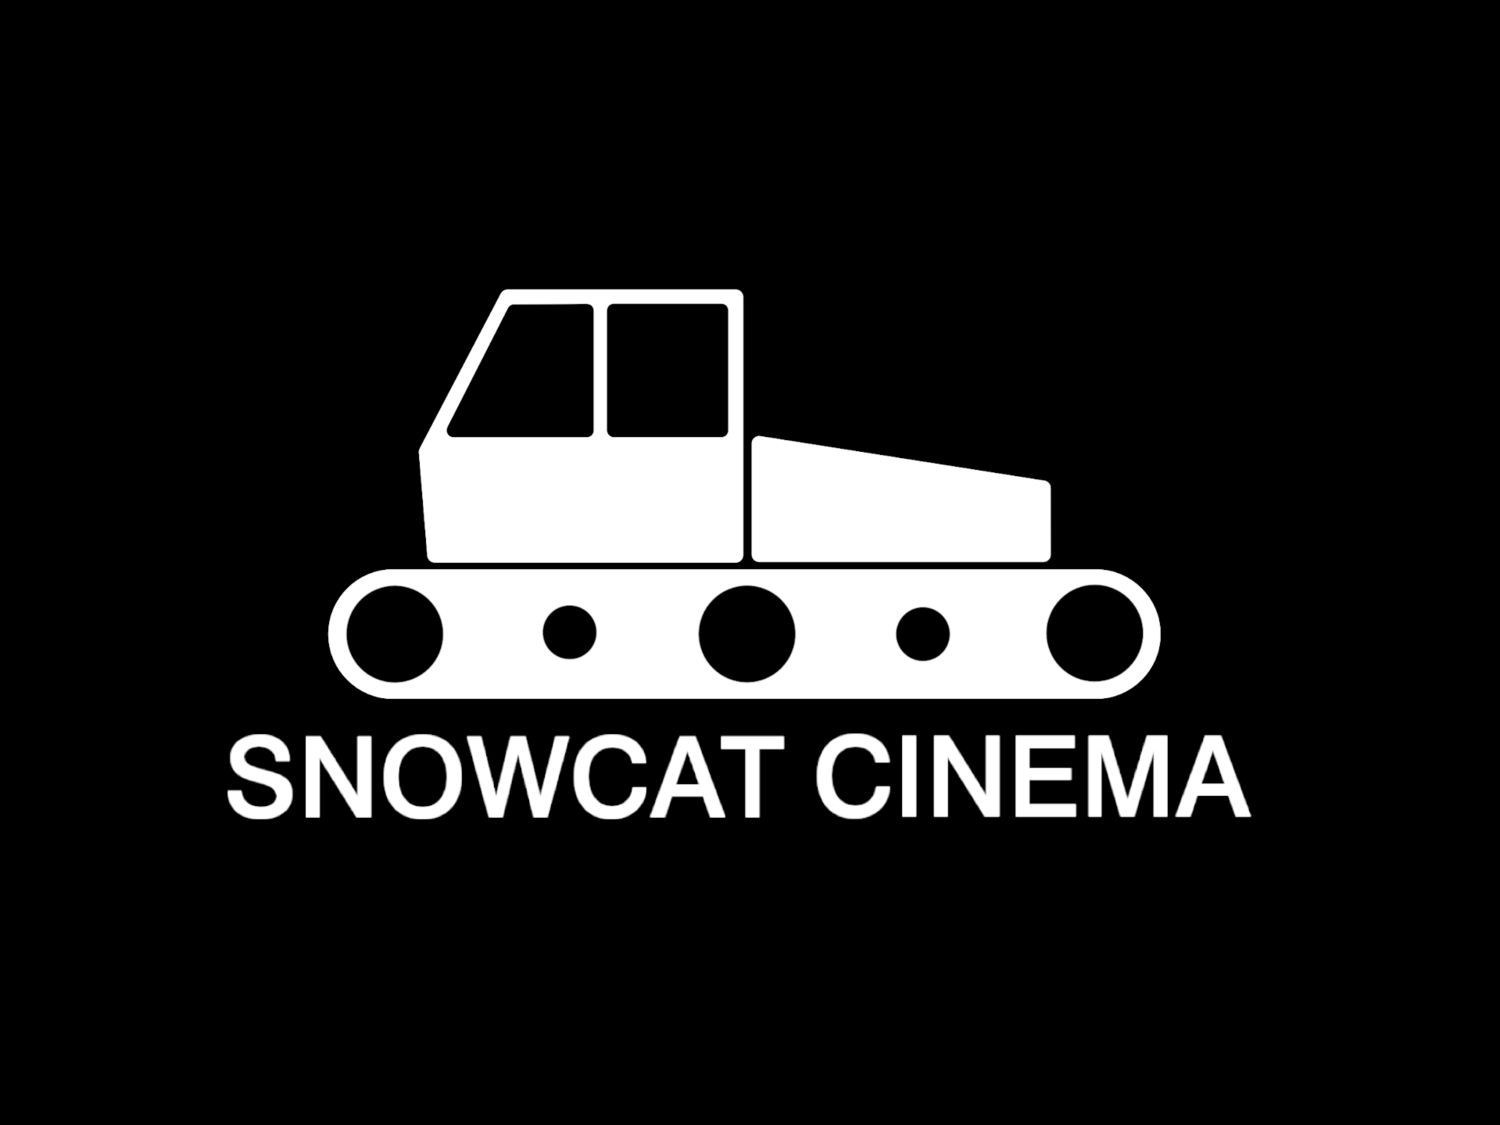 Snowcat Cinema